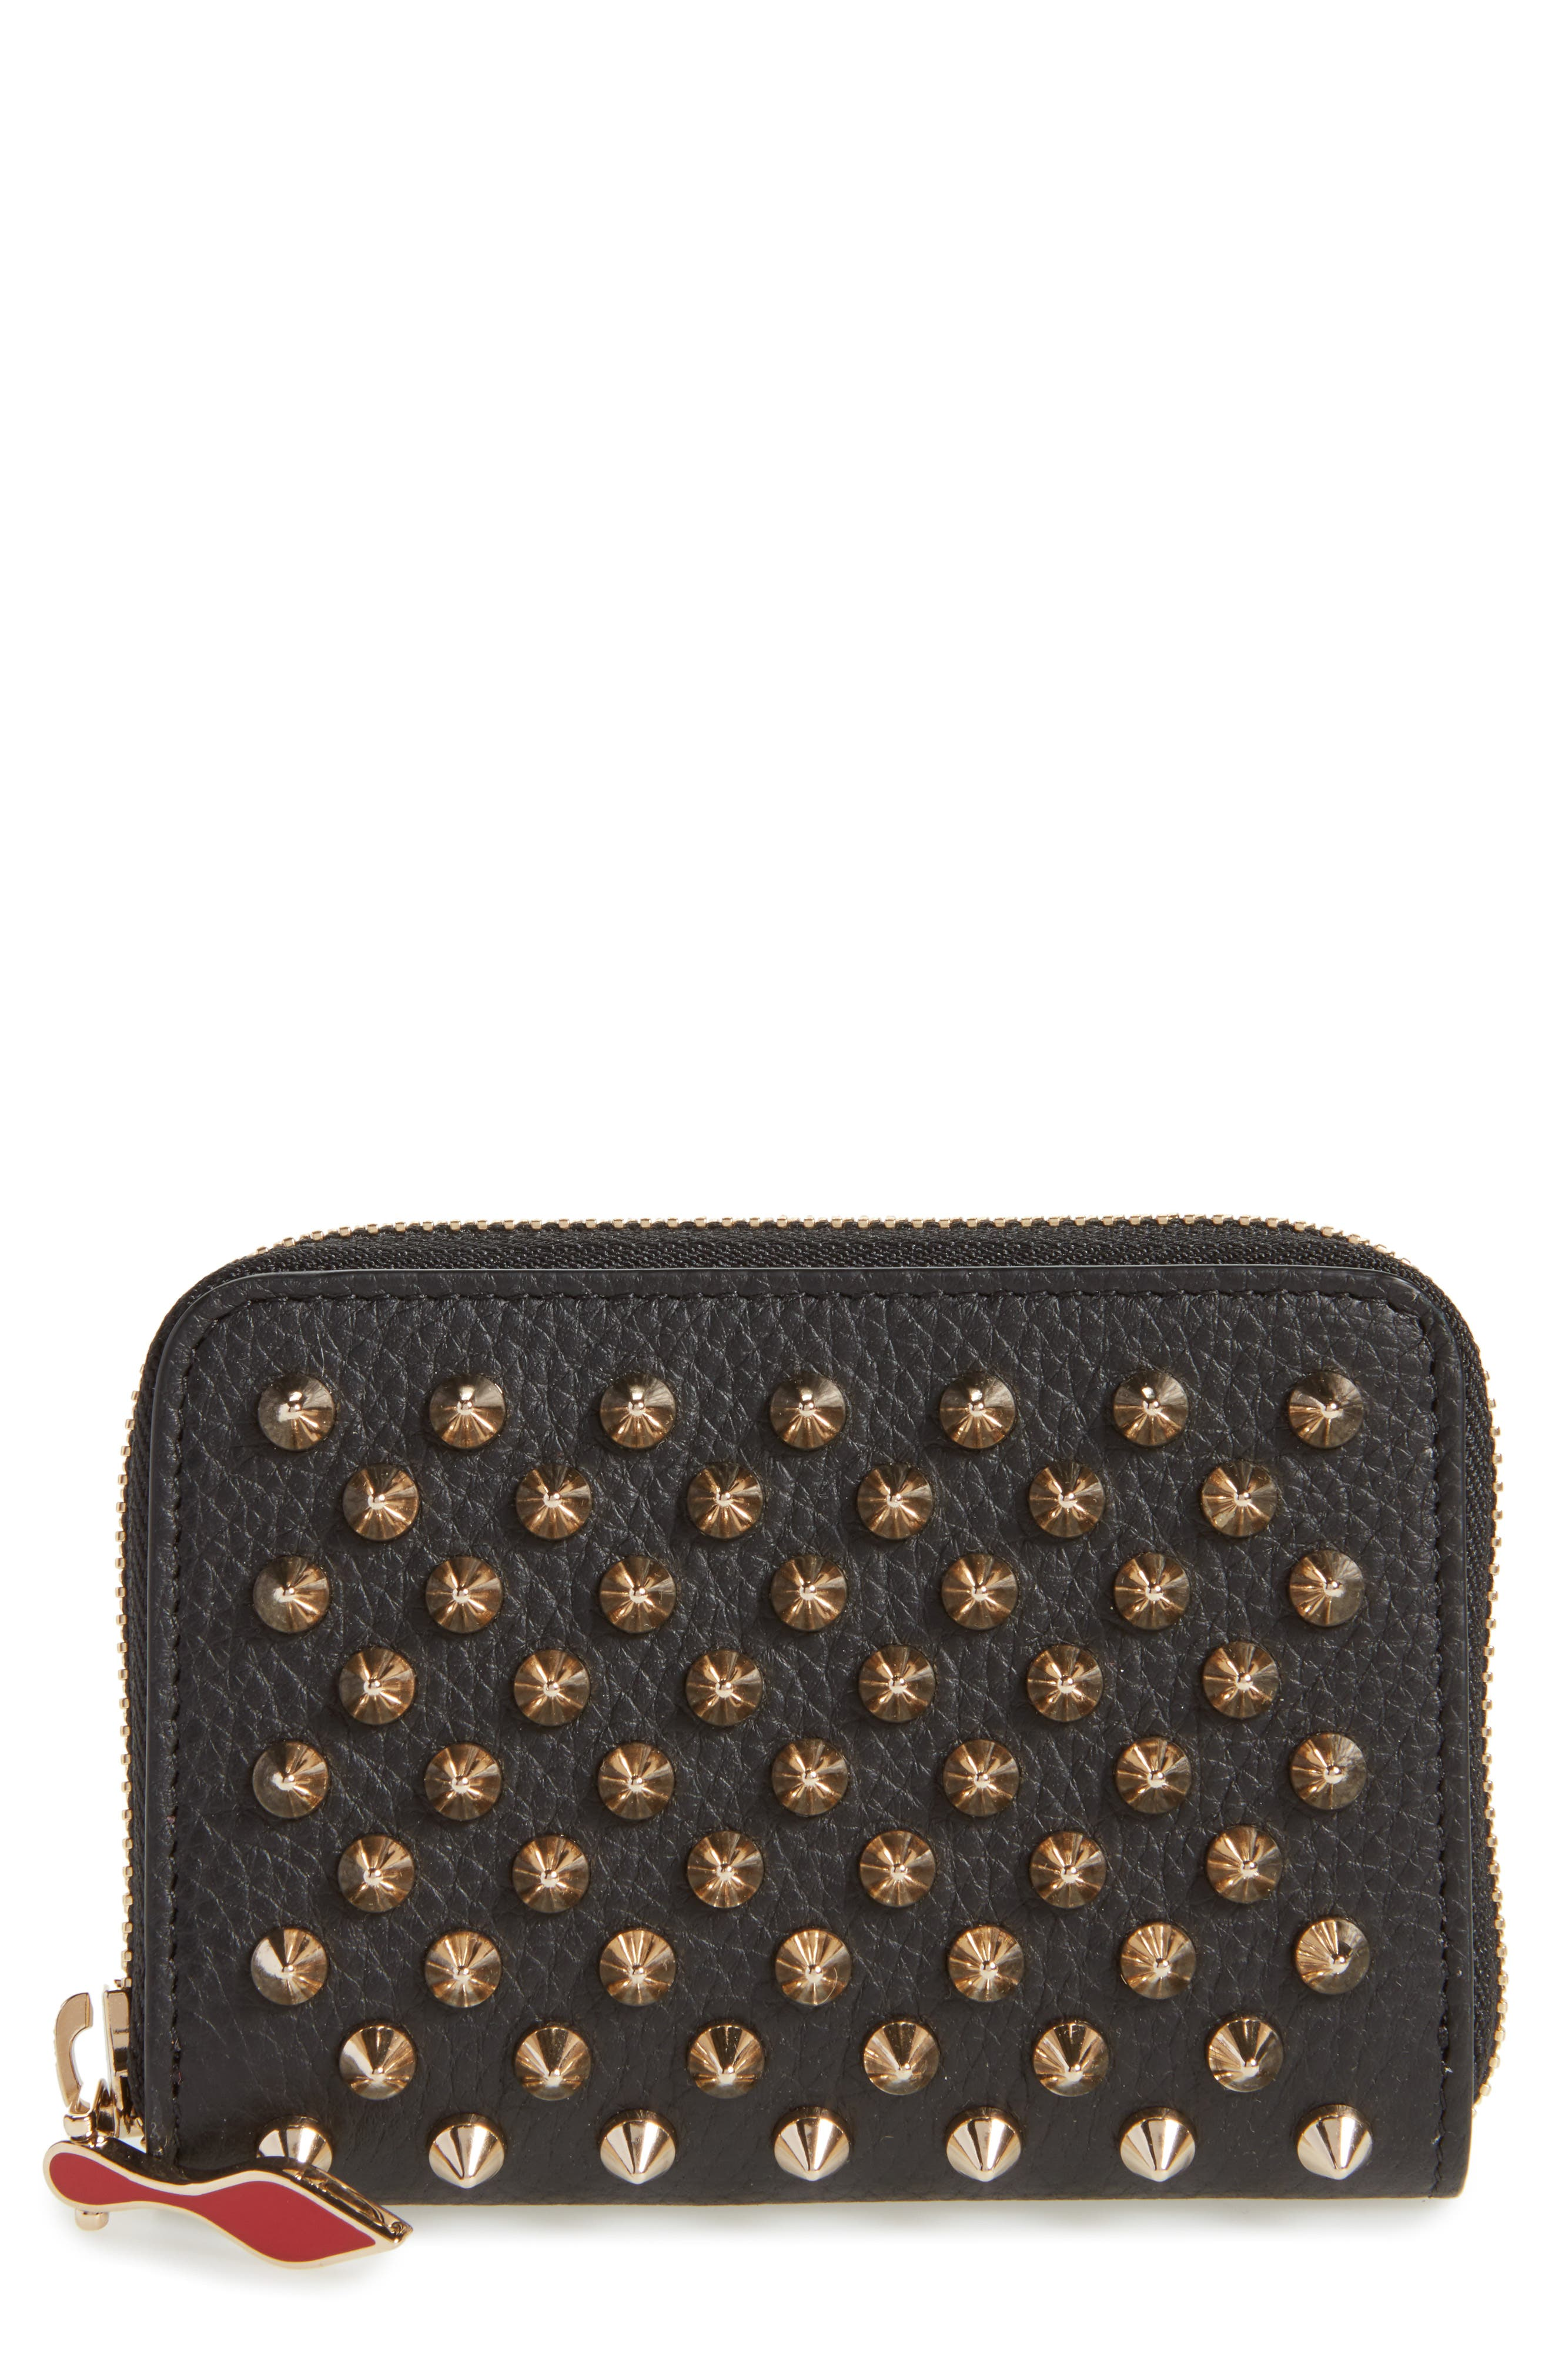 CHRISTIAN LOUBOUTIN, Panettone Leather Coin Purse, Main thumbnail 1, color, BLACK/ GOLD